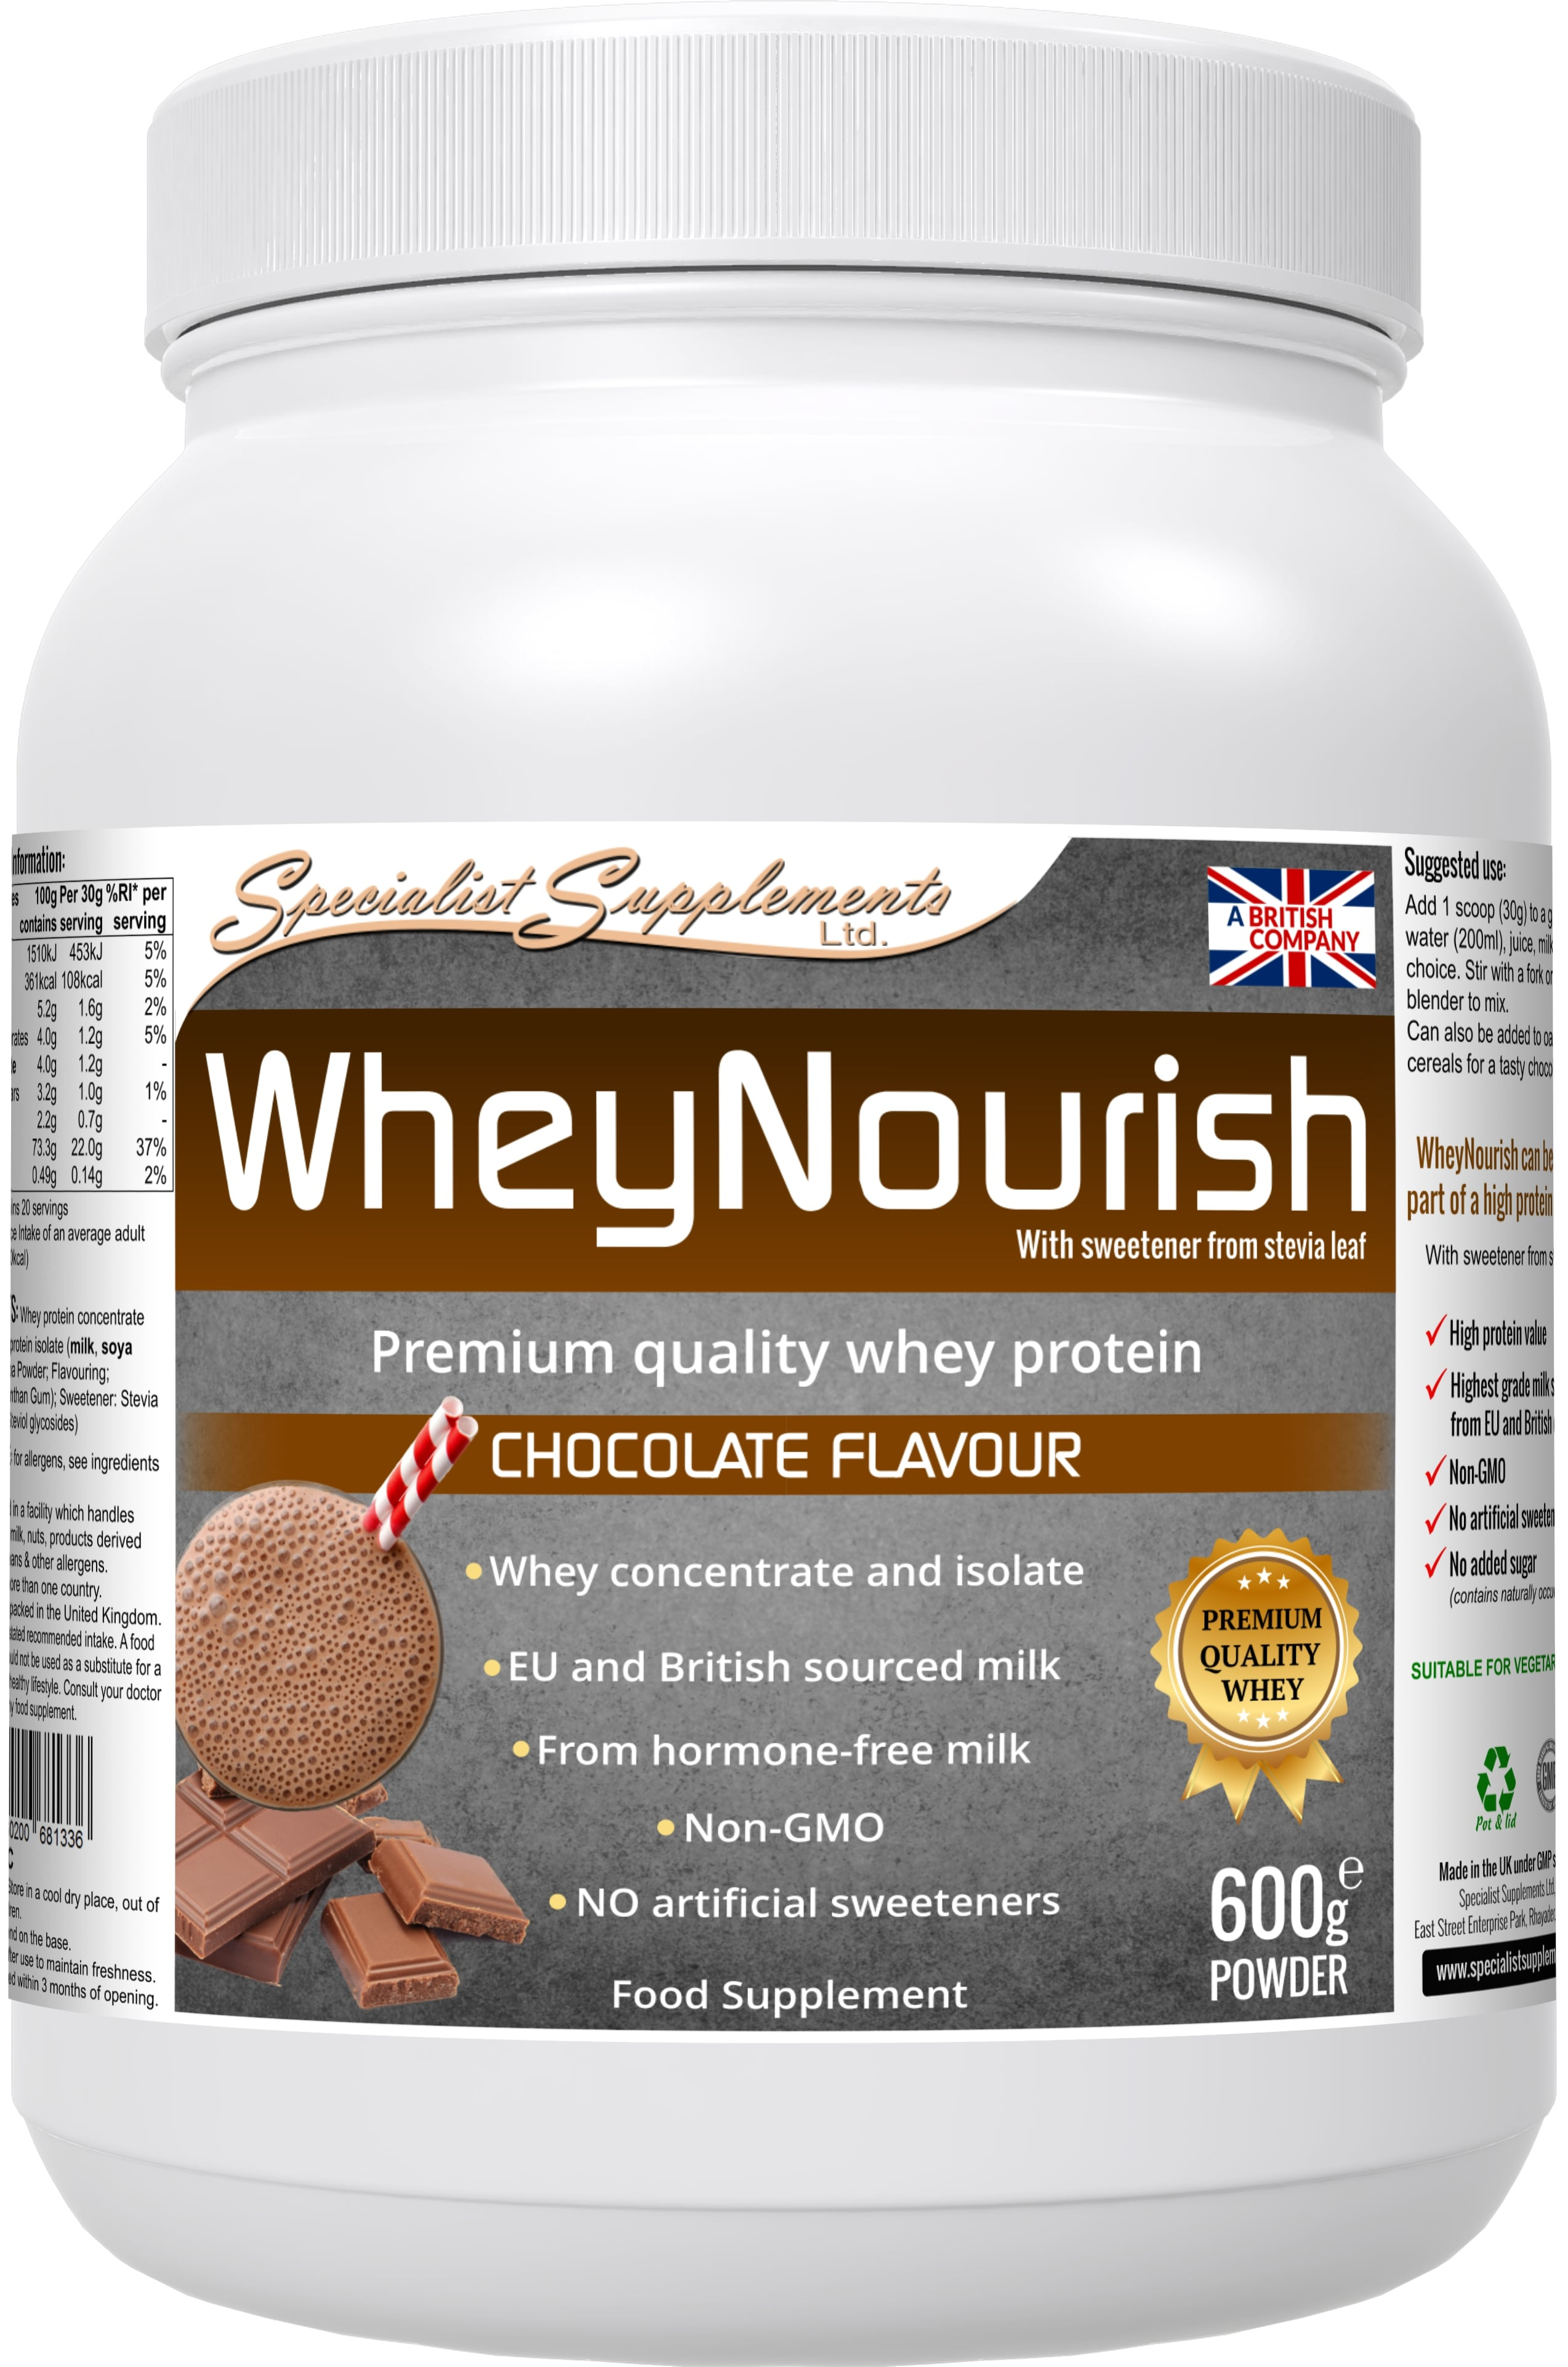 WheyNourish (chocolate flavour)